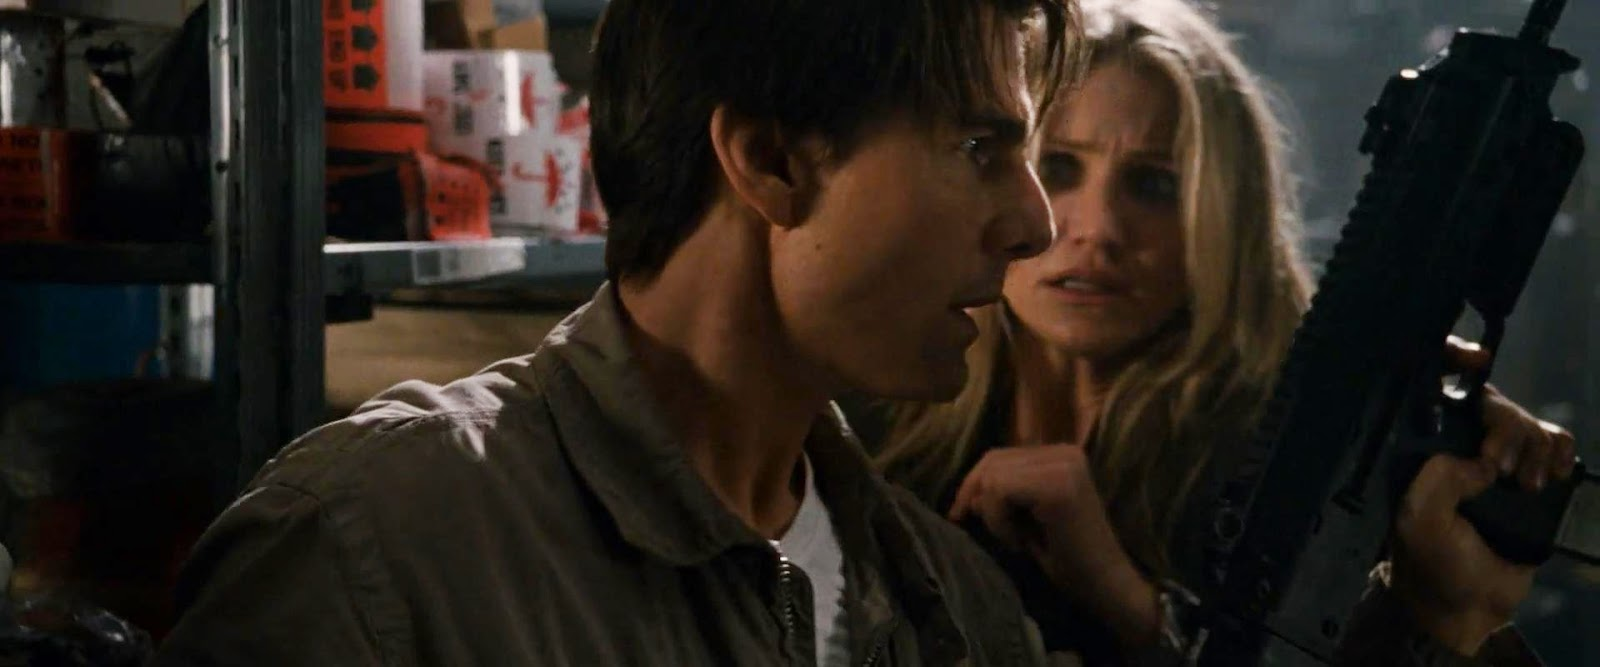 Encuentro explosivo (Knight and Day 2010) BRrip Full HD Dual